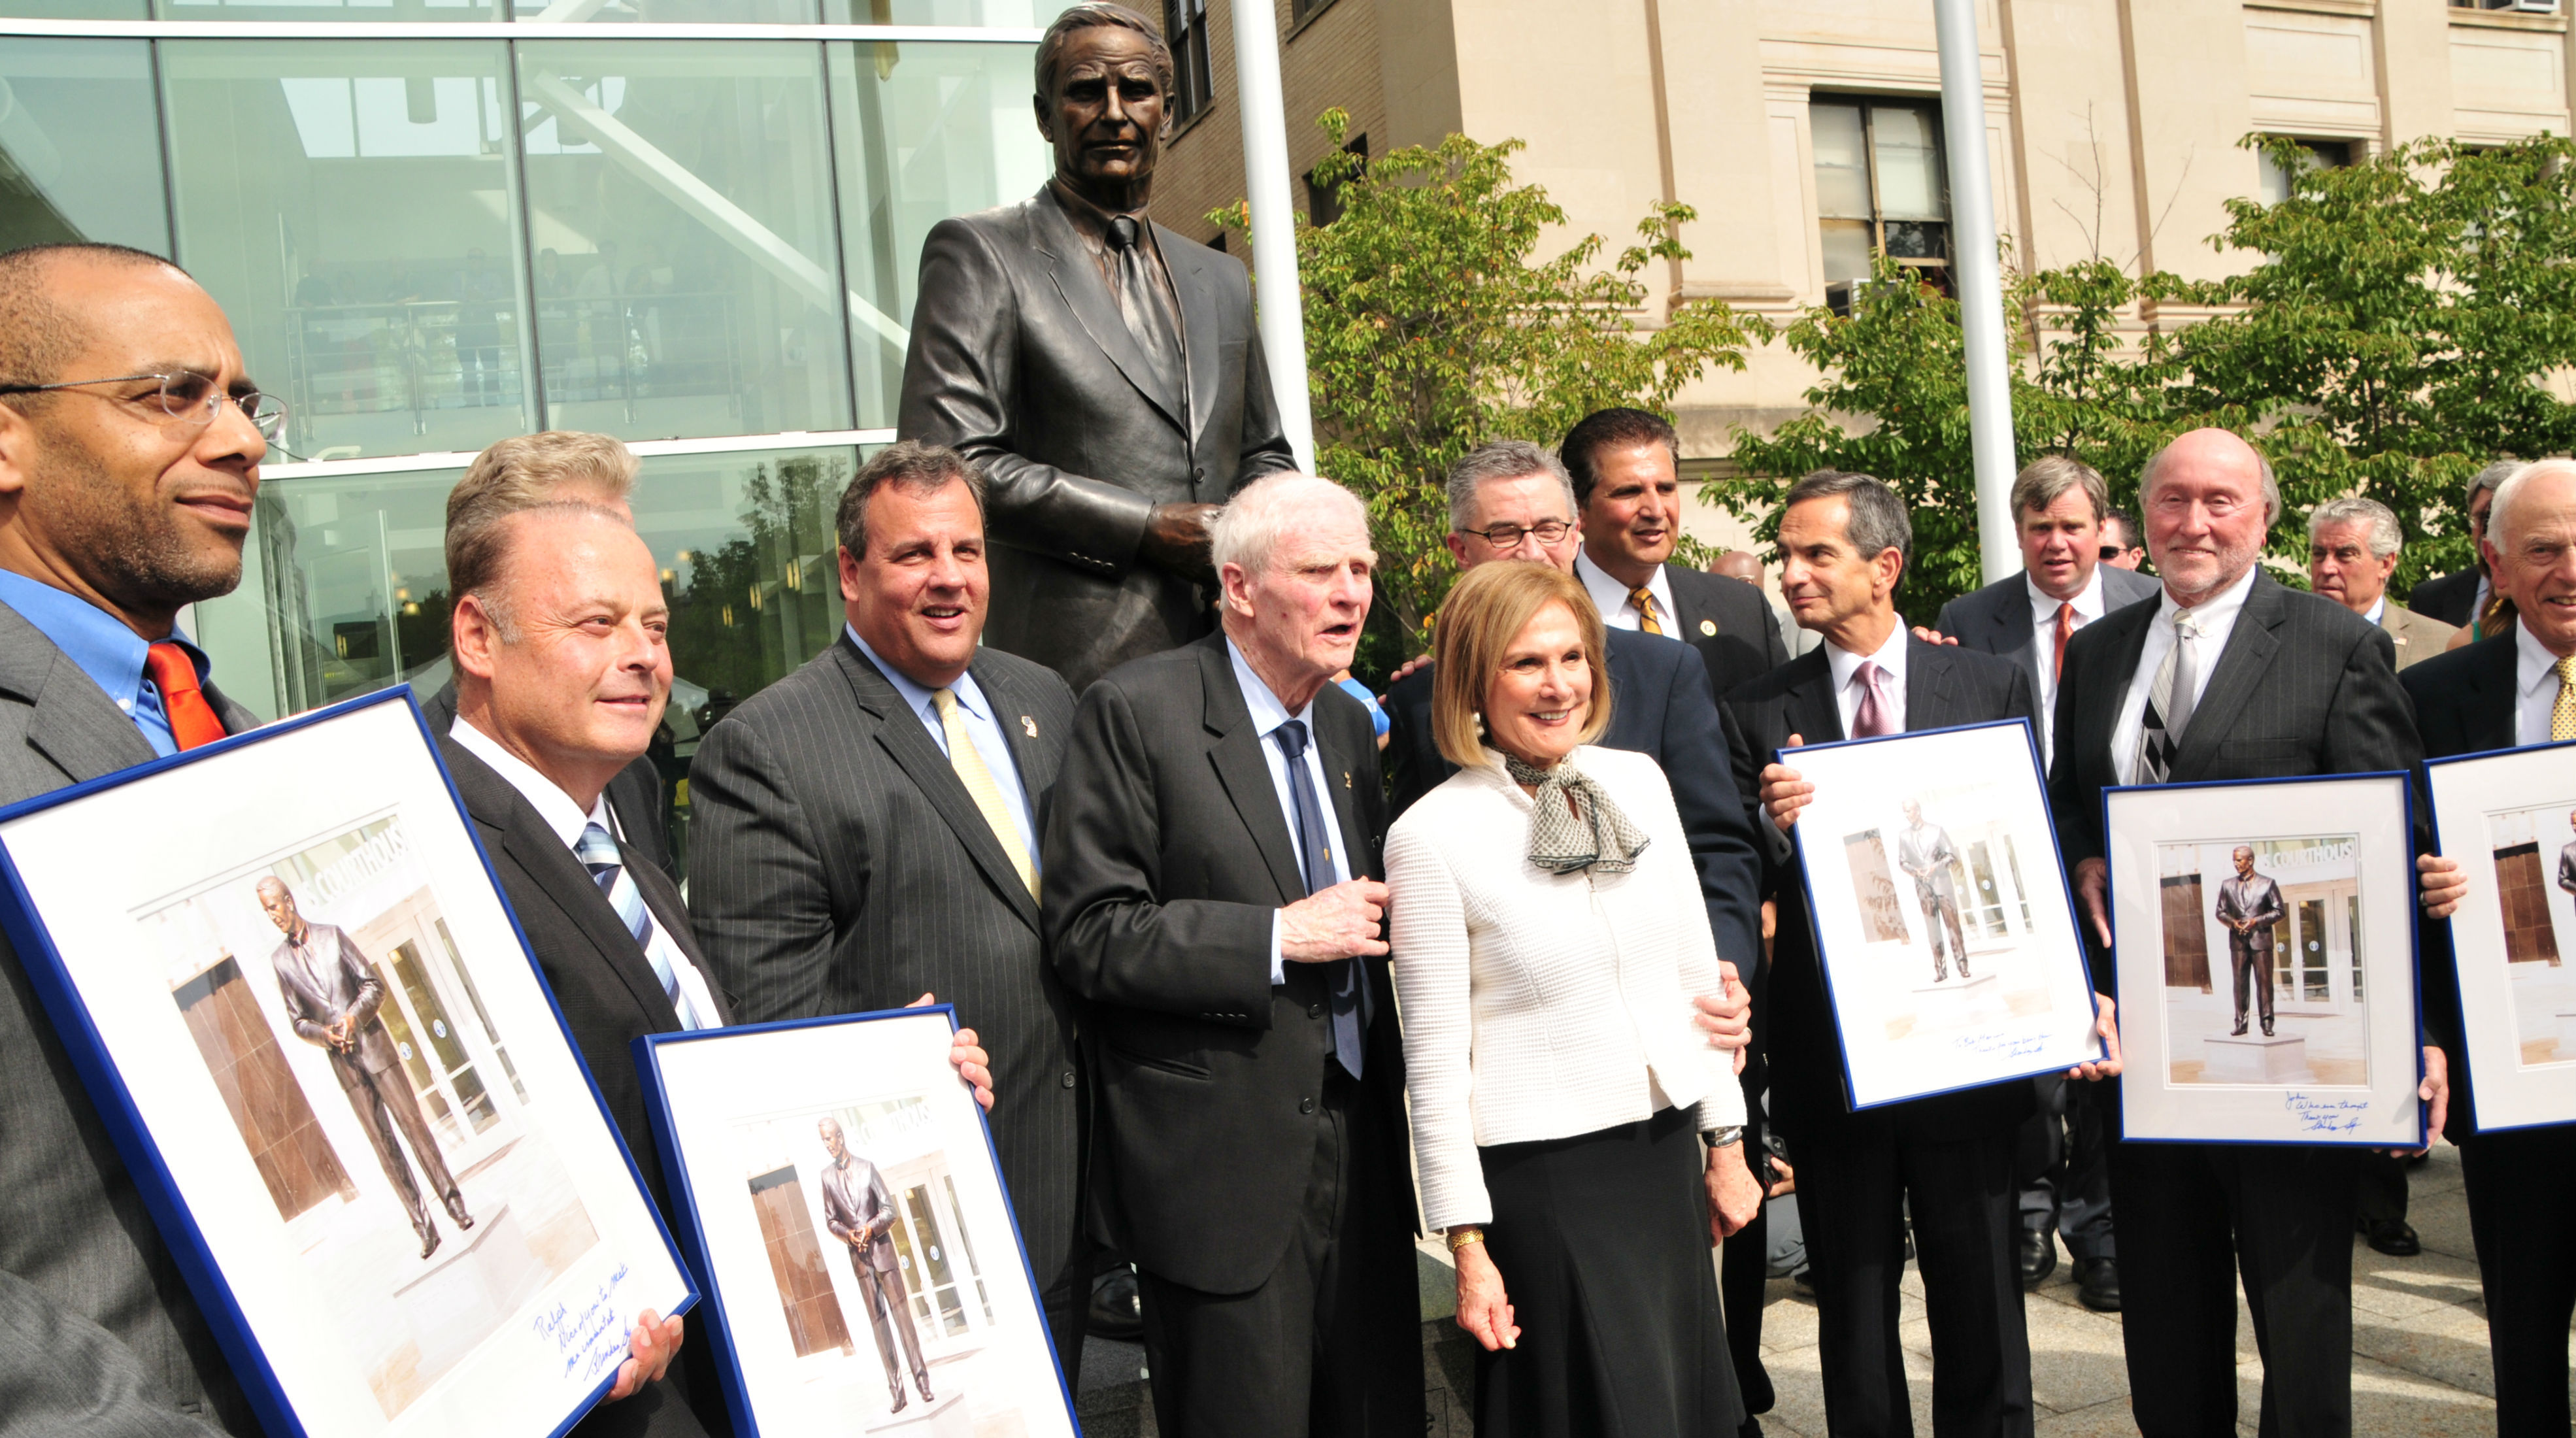 Essex County Executive Joe DiVincenzo and Governor Chris Christie Dedicate Governor Brendan Byrne Statue in Newark